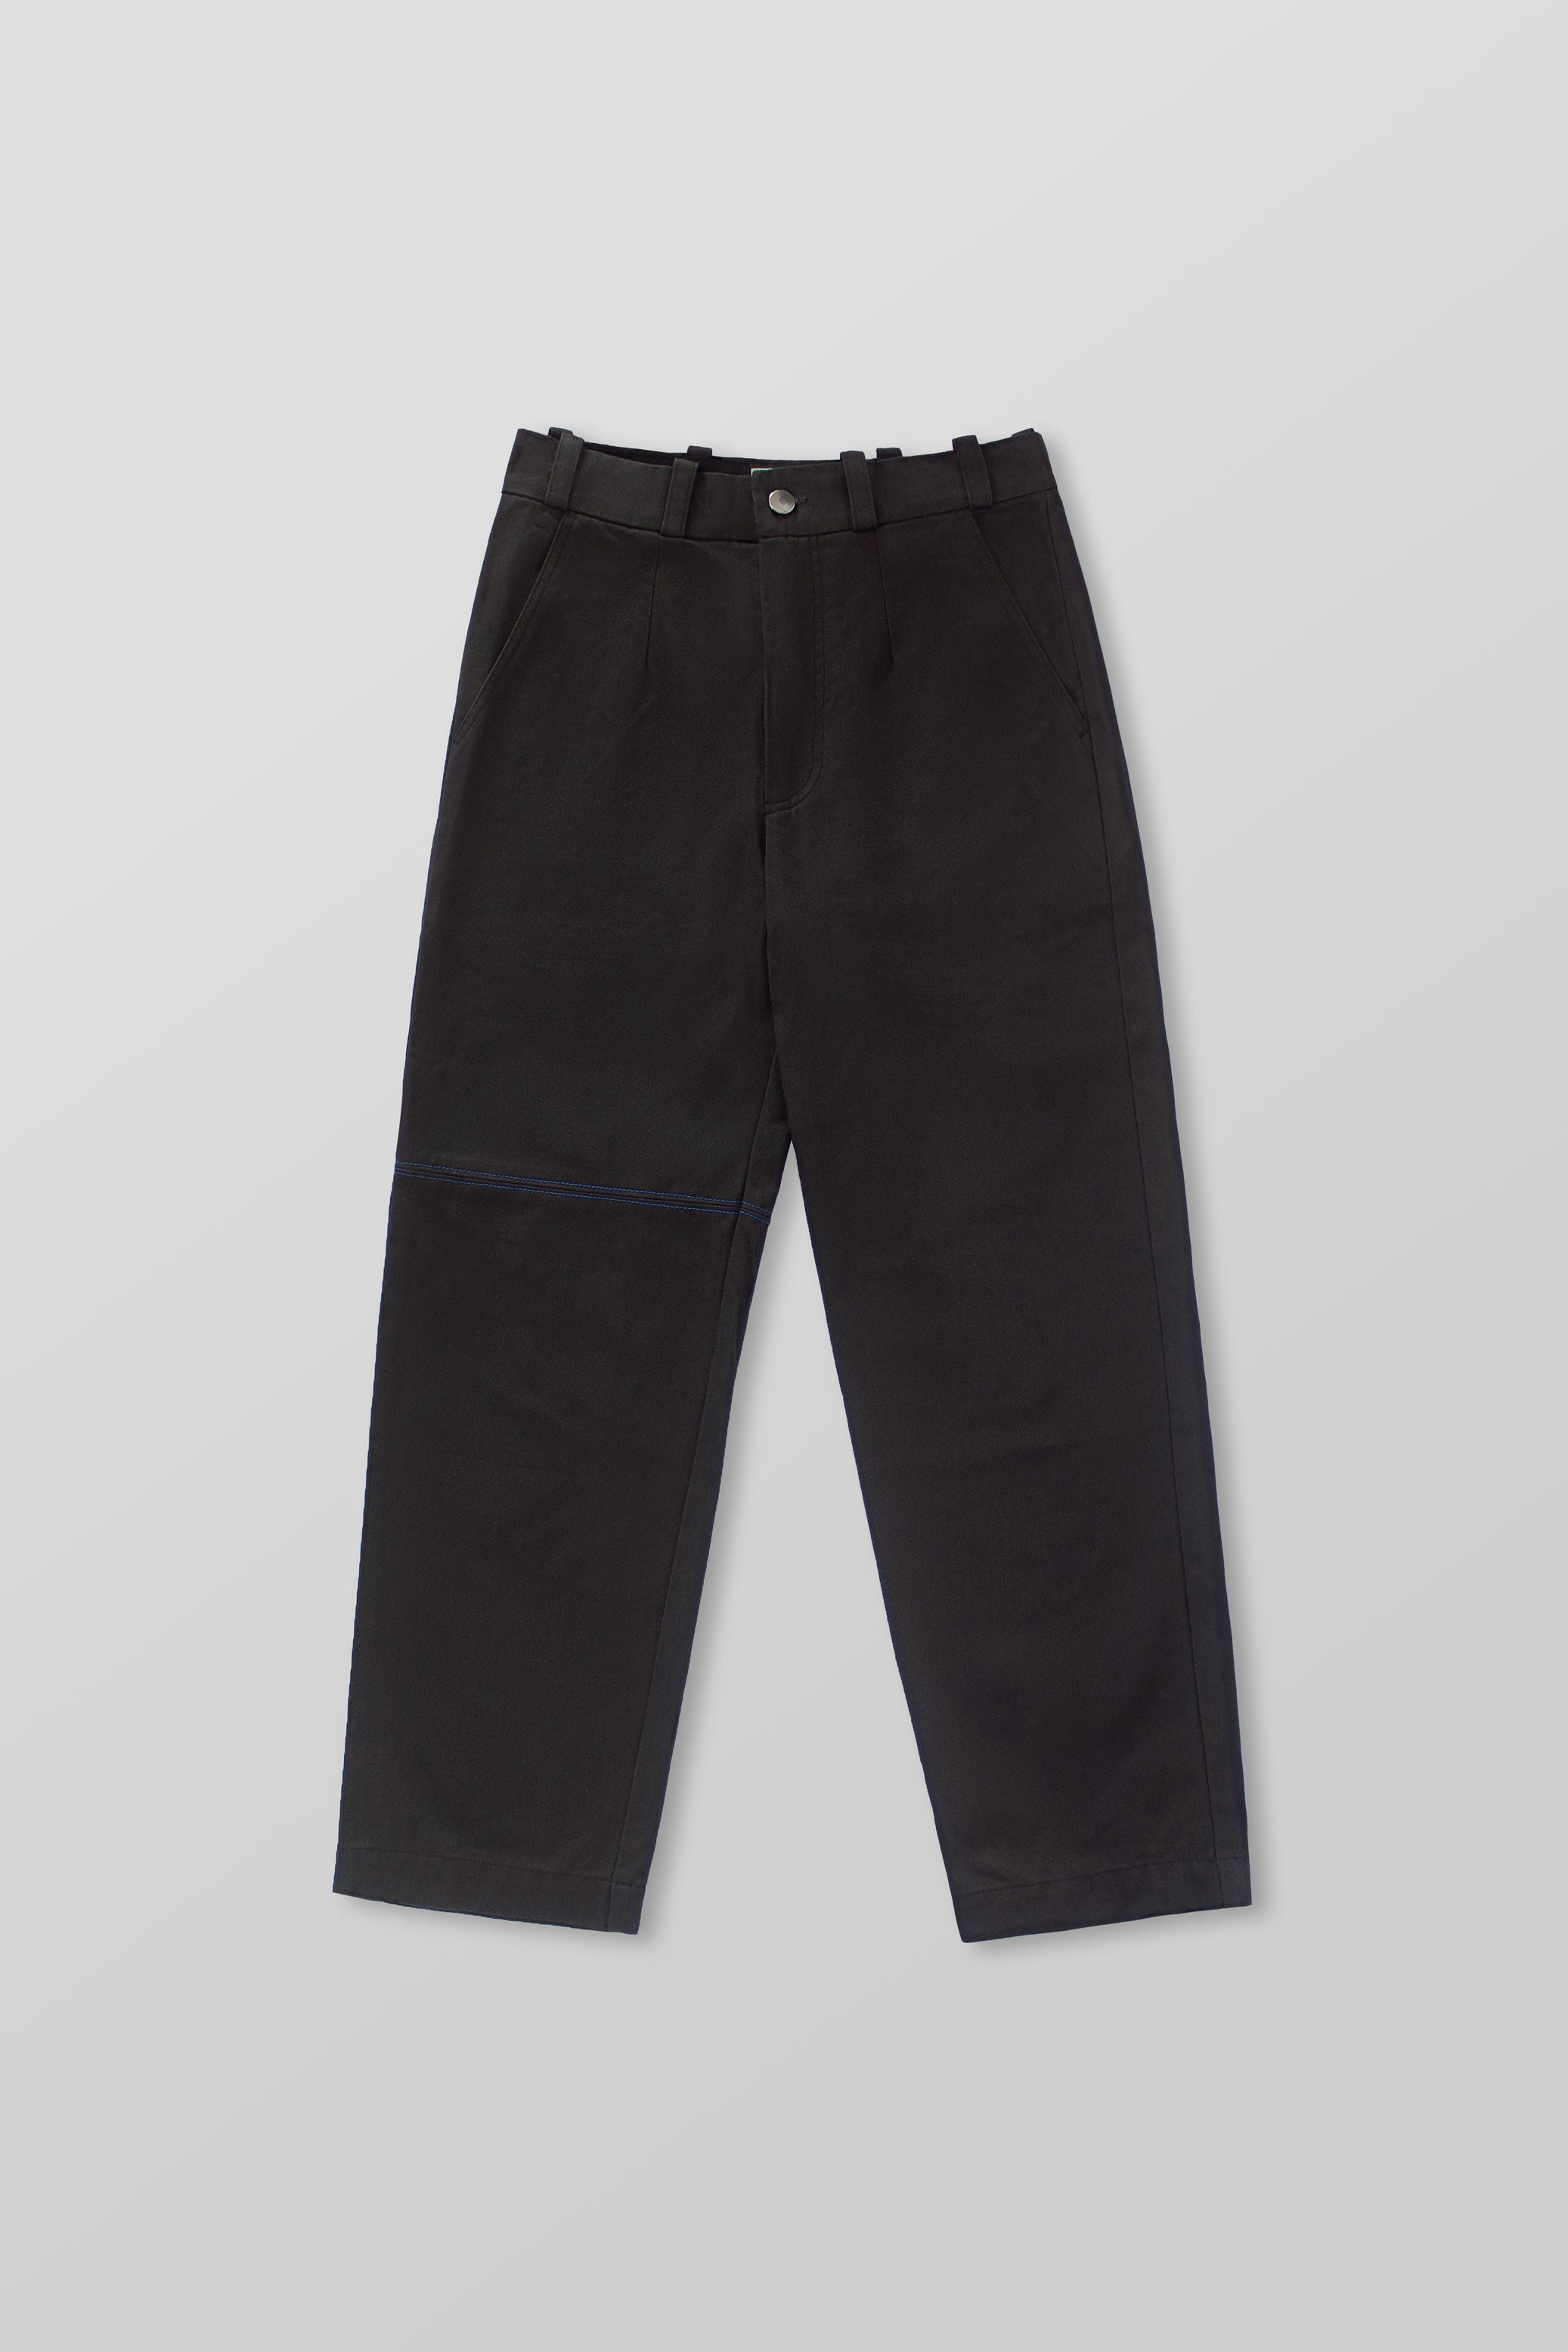 'Deepest Light' Trousers (Shadow Gray) - Mercanie